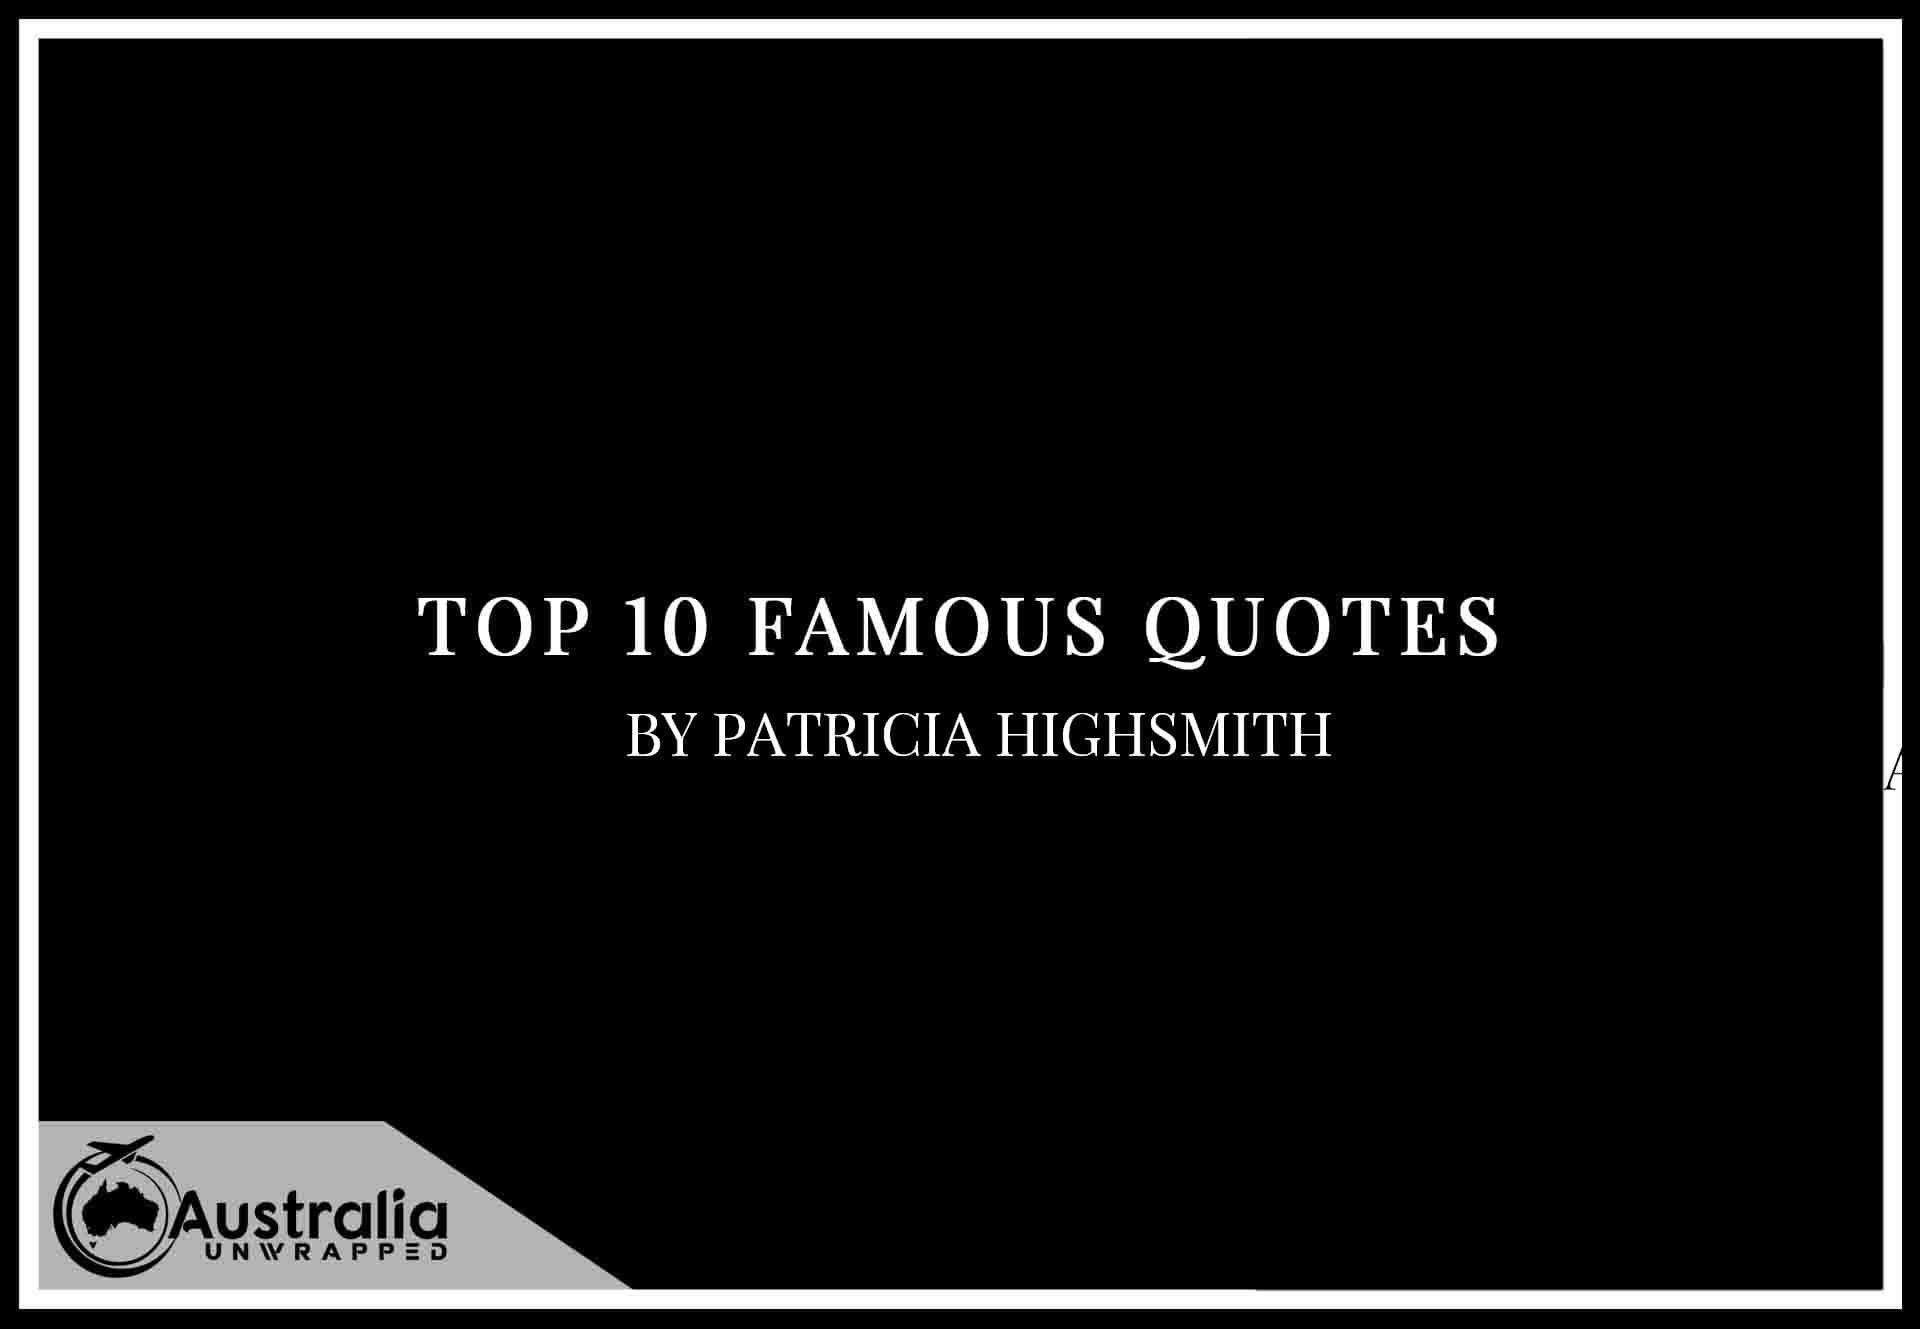 Top 10 Famous Quotes by Author Patricia Highsmith